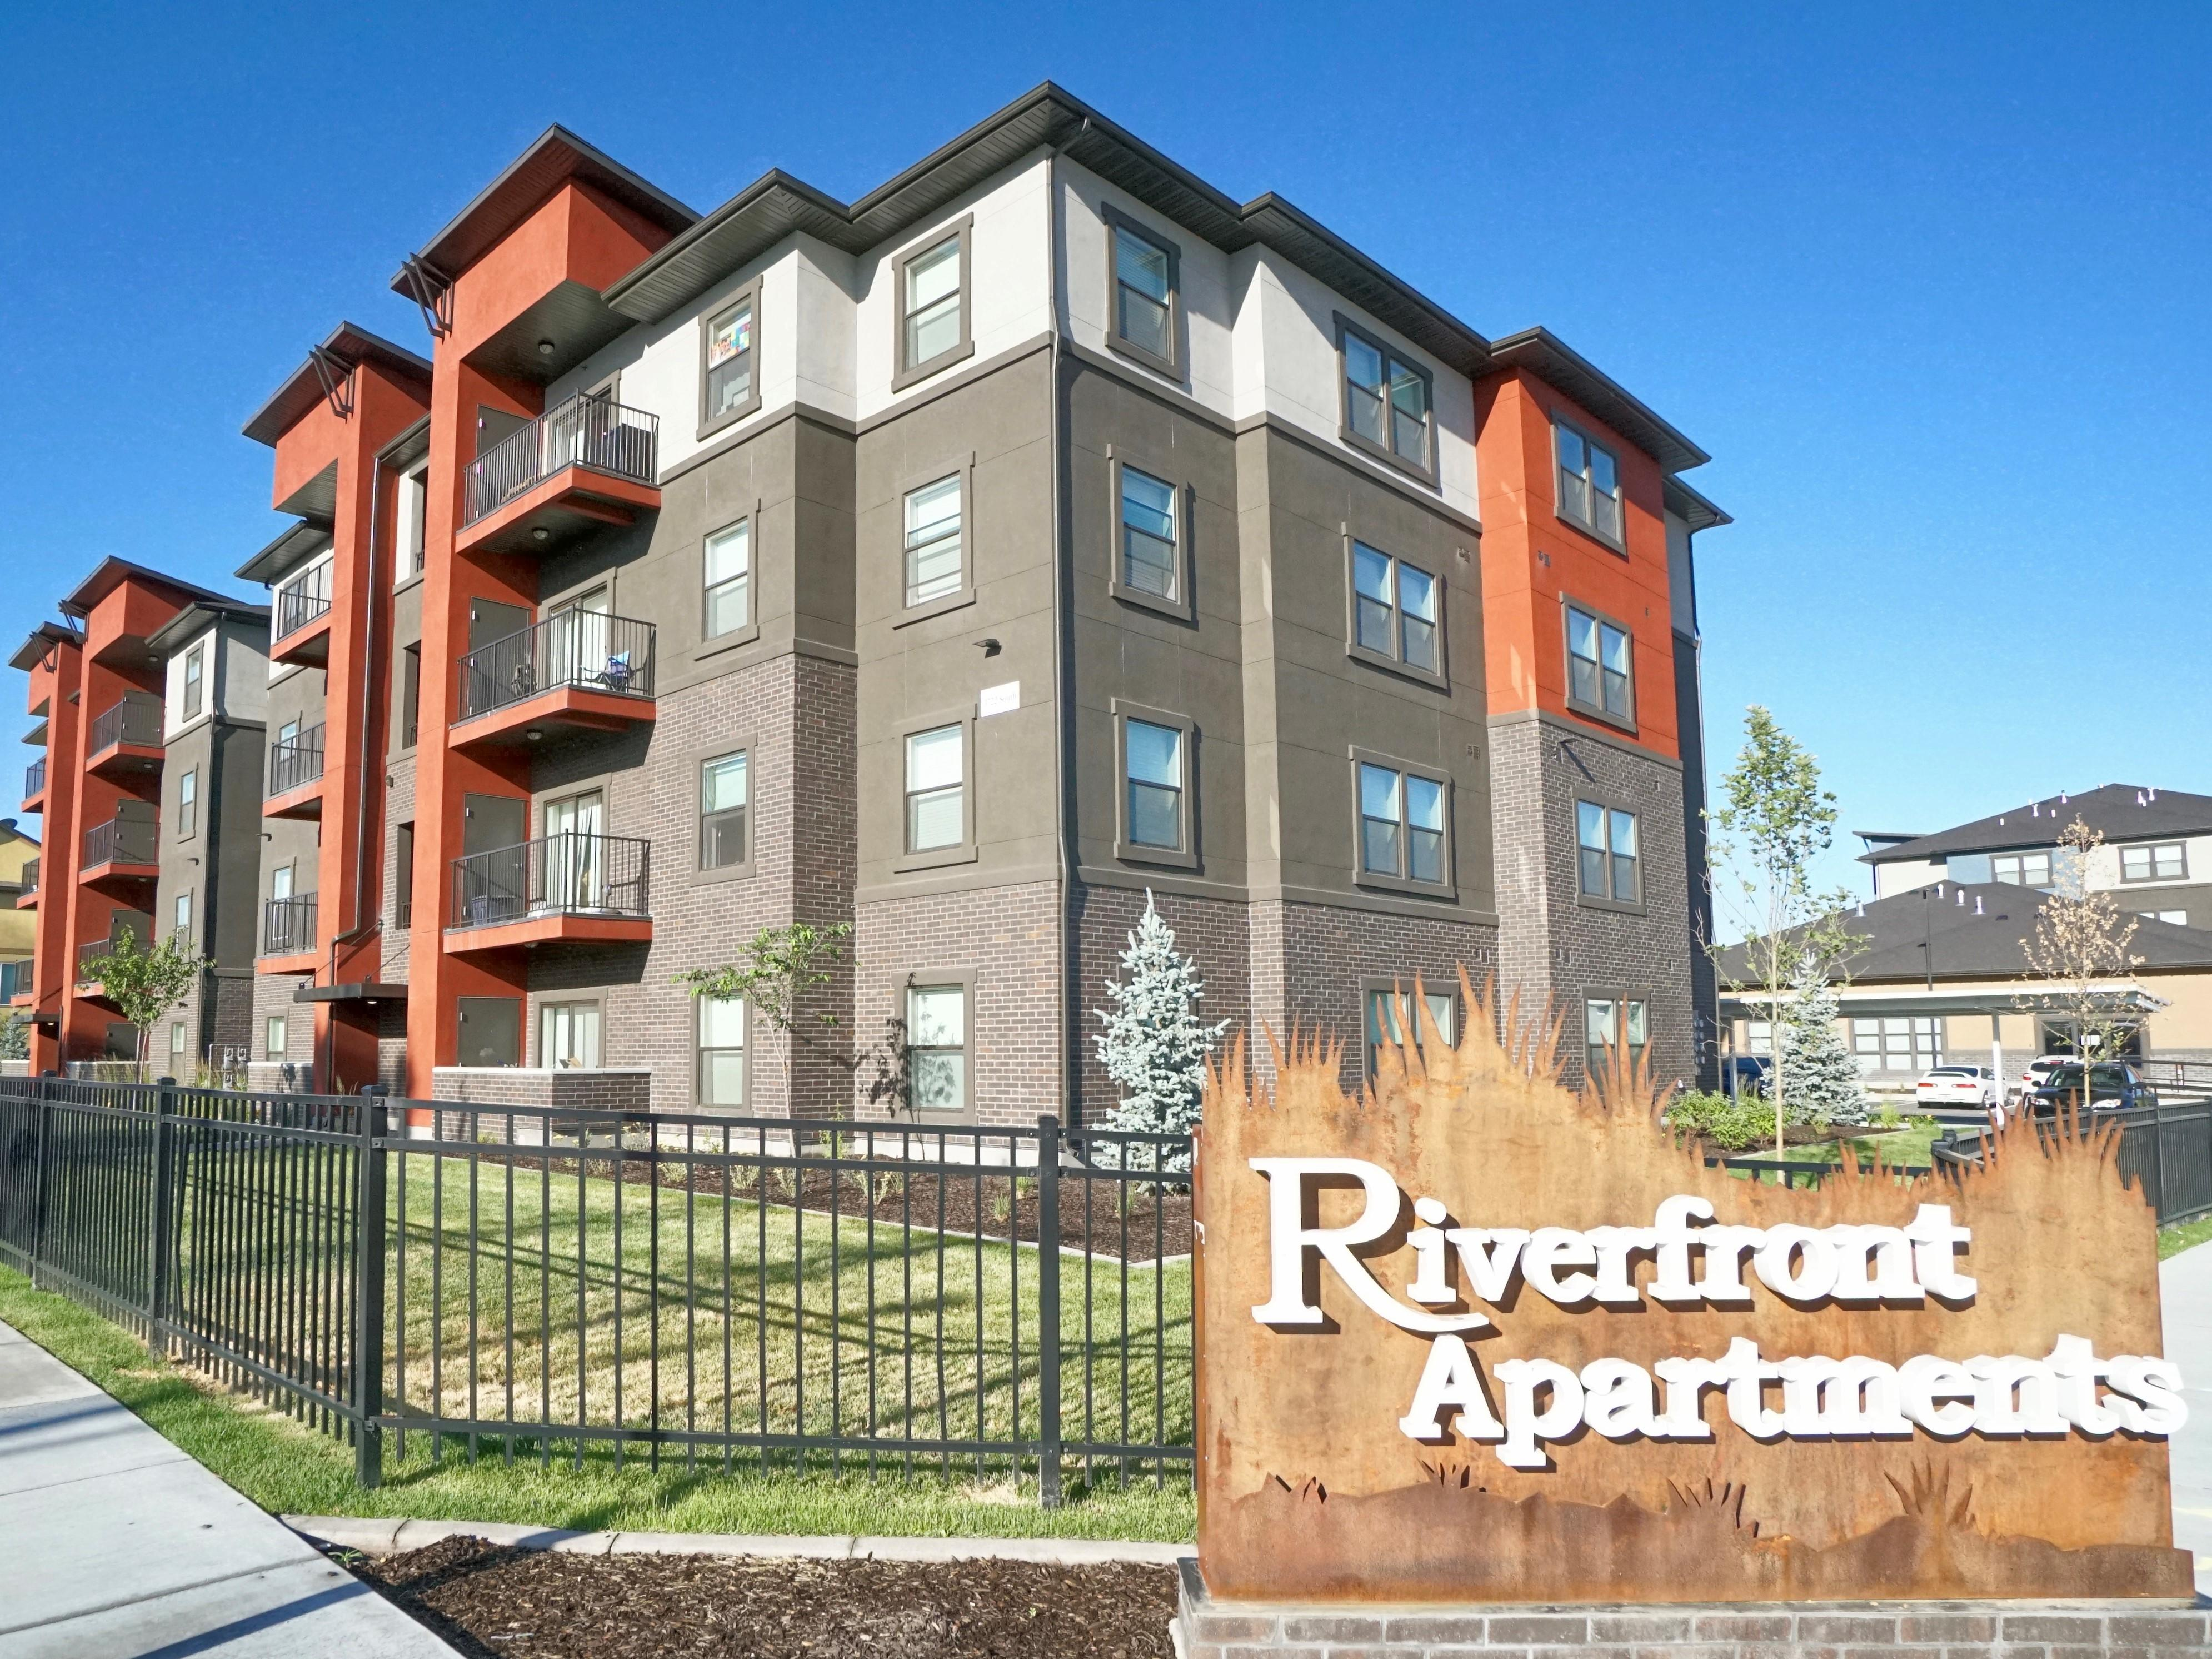 Riverfront Apartments image 0